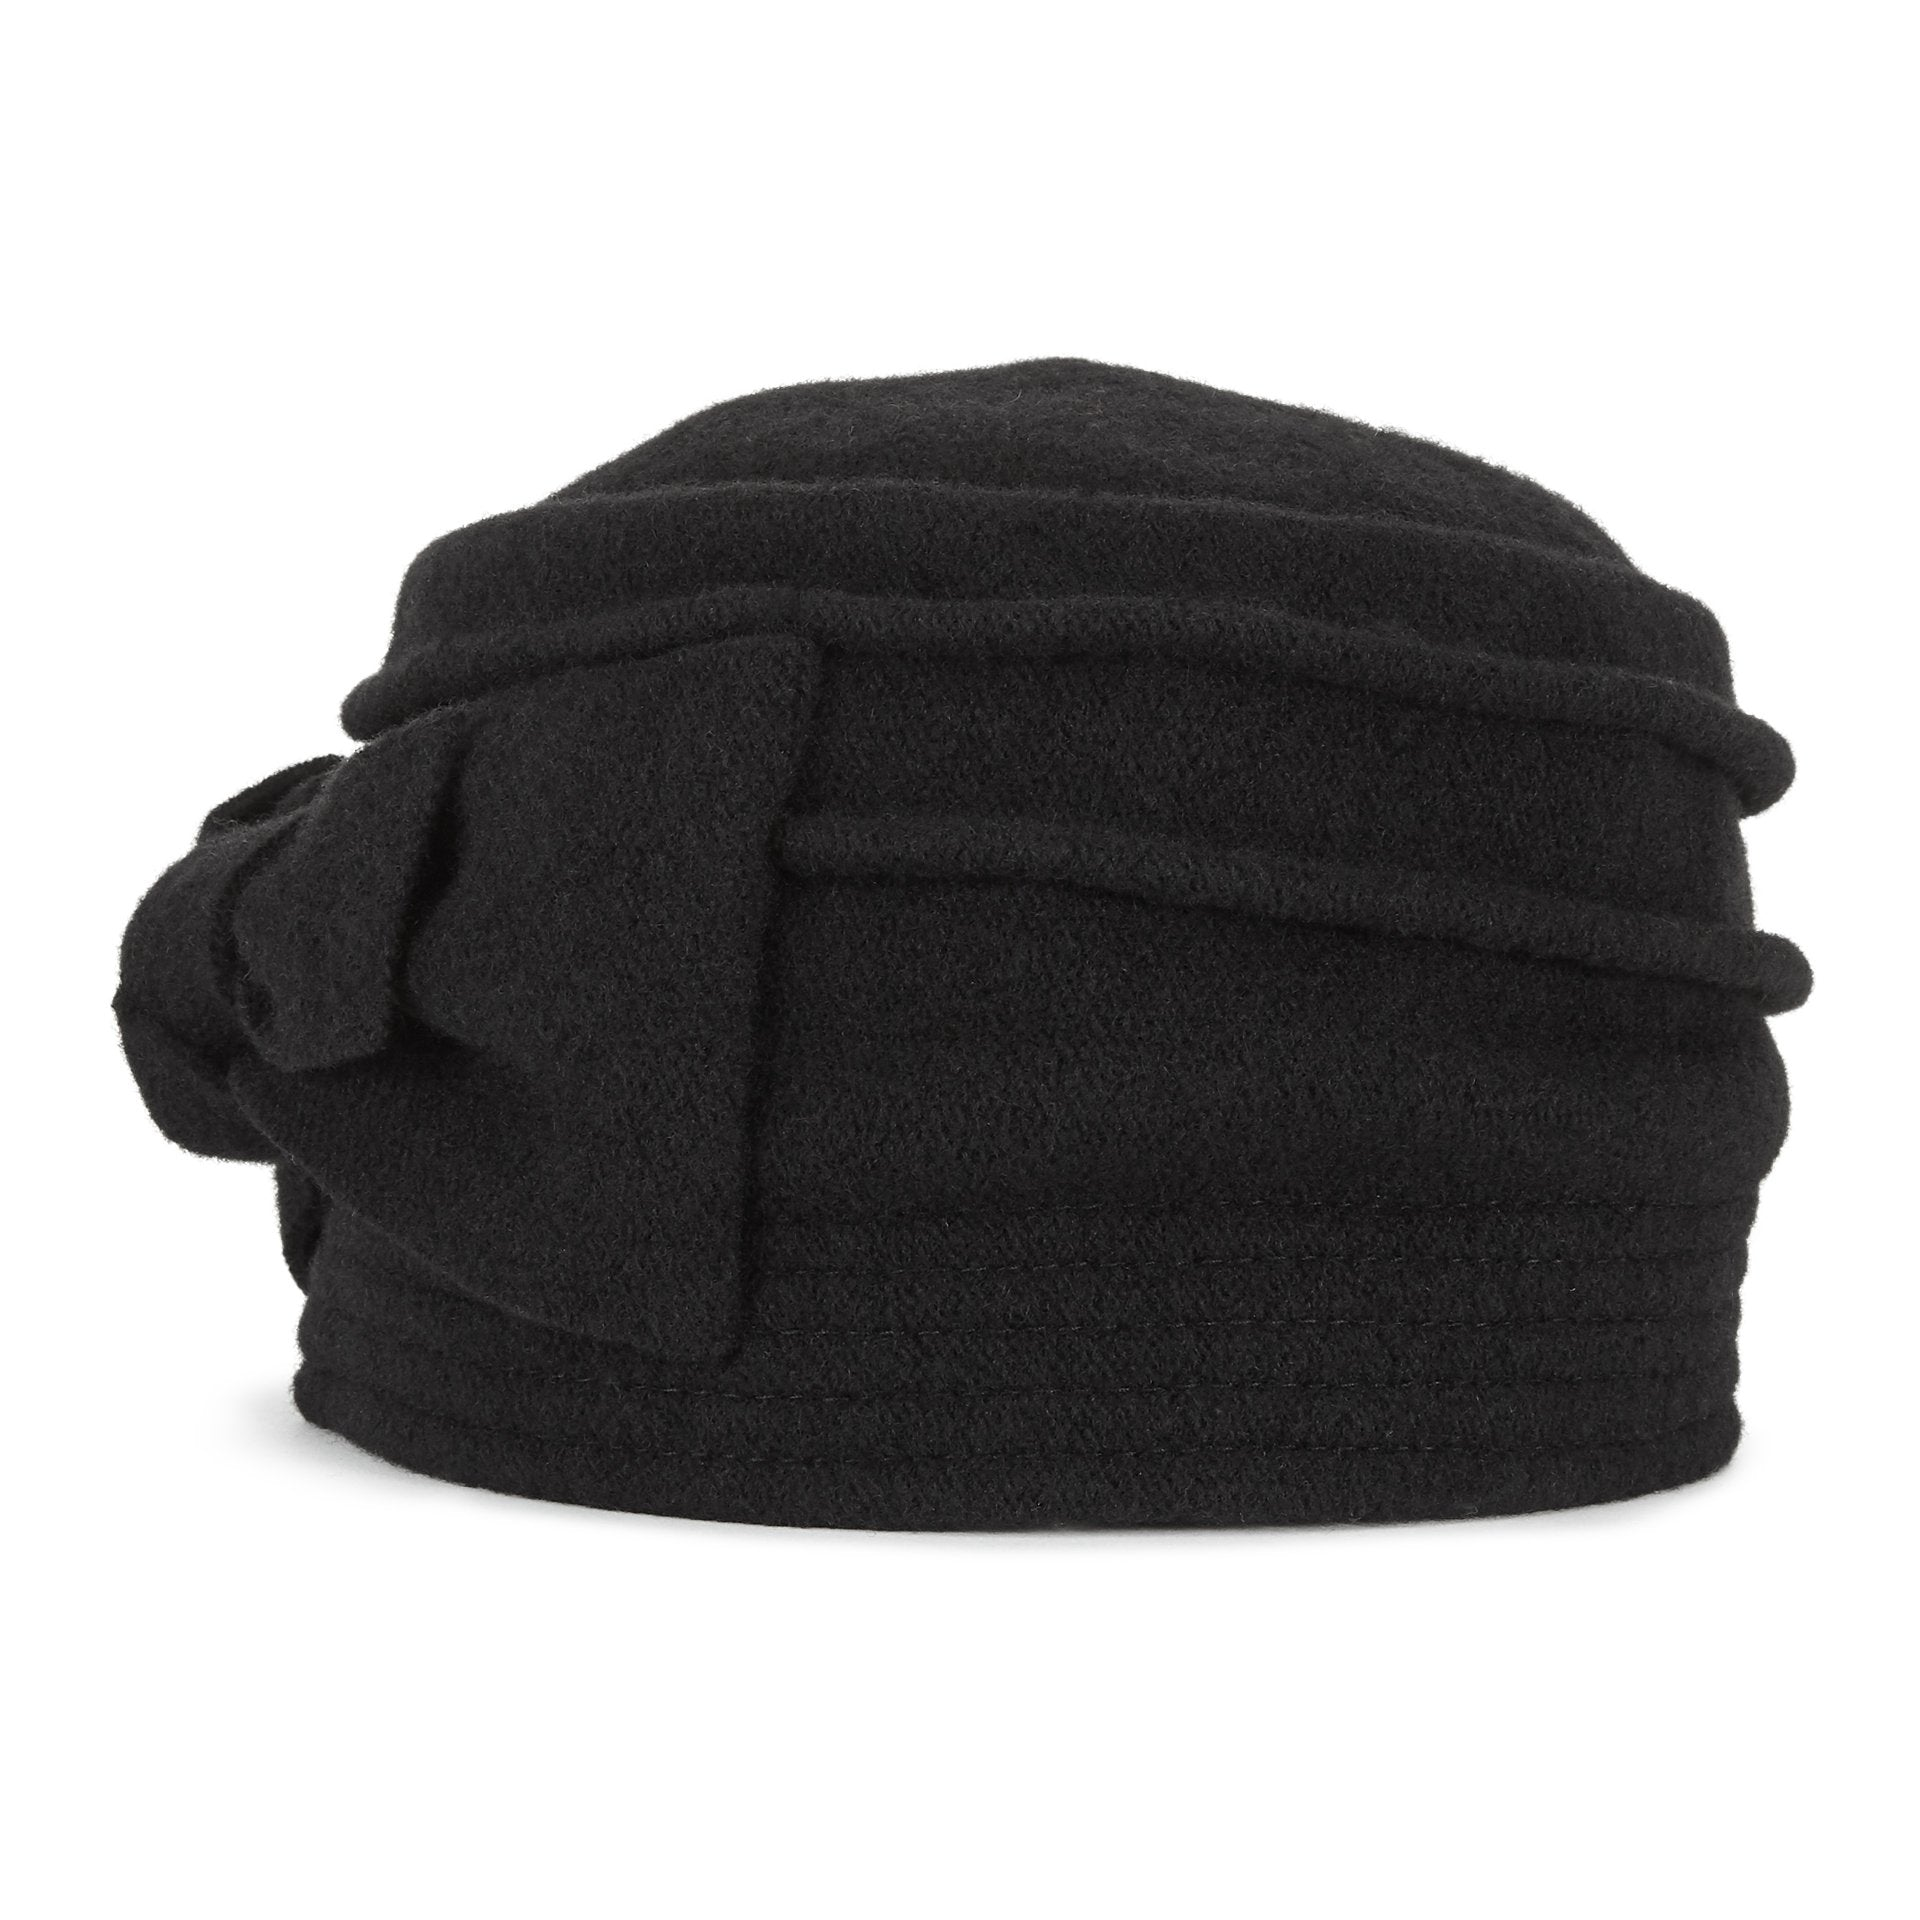 Charlotte wool beanie - Women's Beanies - Lock & Co. Hatters London UK